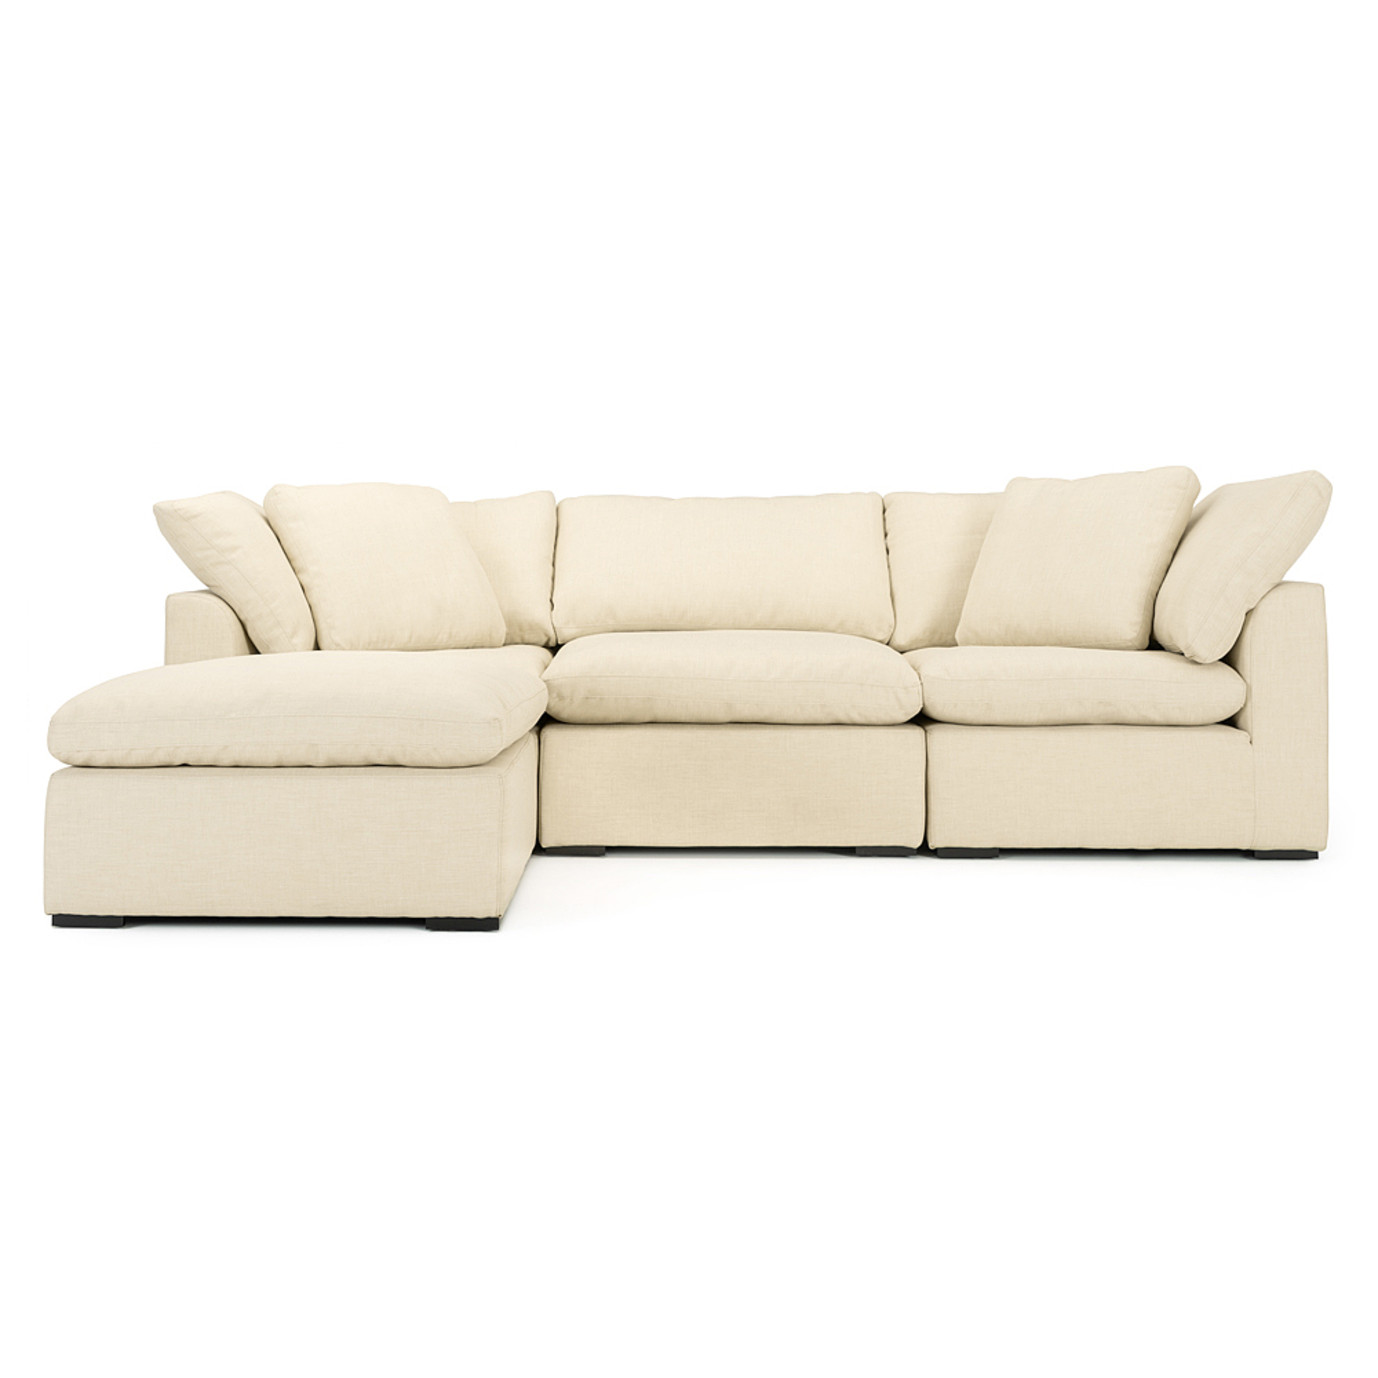 Aria 4pc Seating Set - Beige